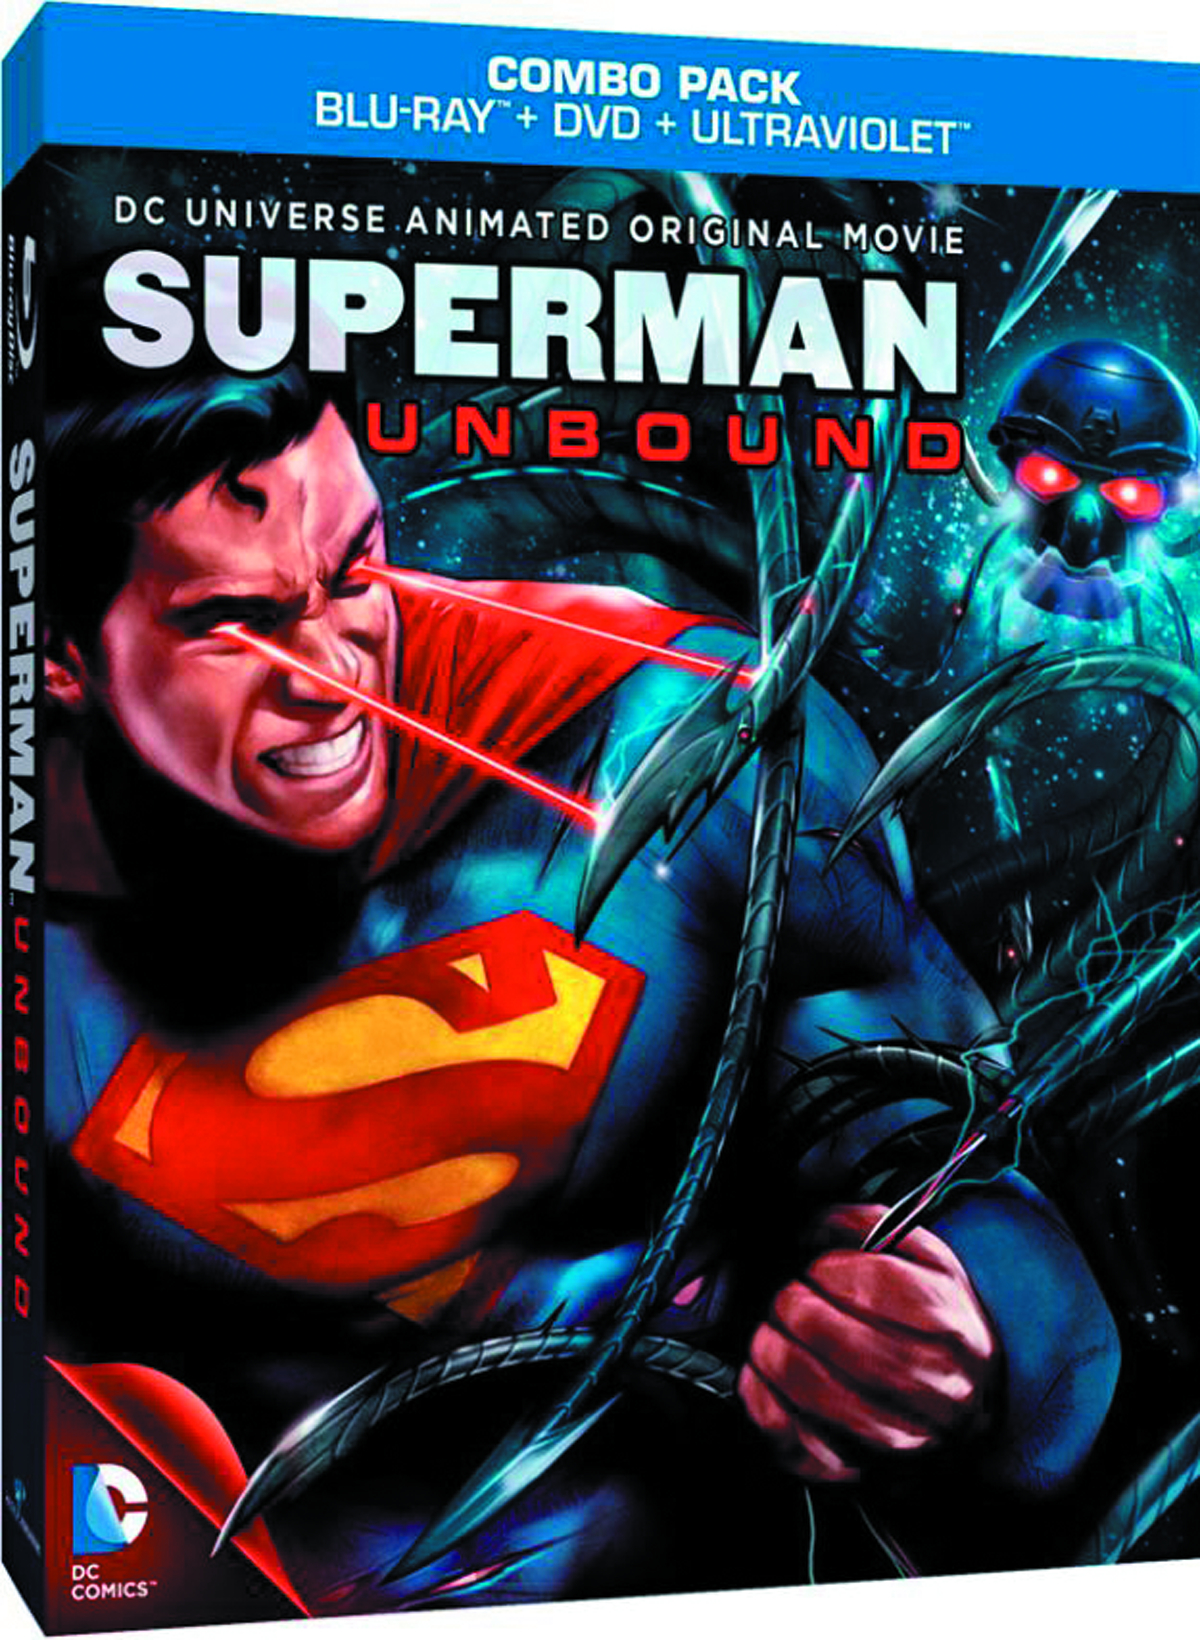 DCU SUPERMAN UNBOUND BD + DVD